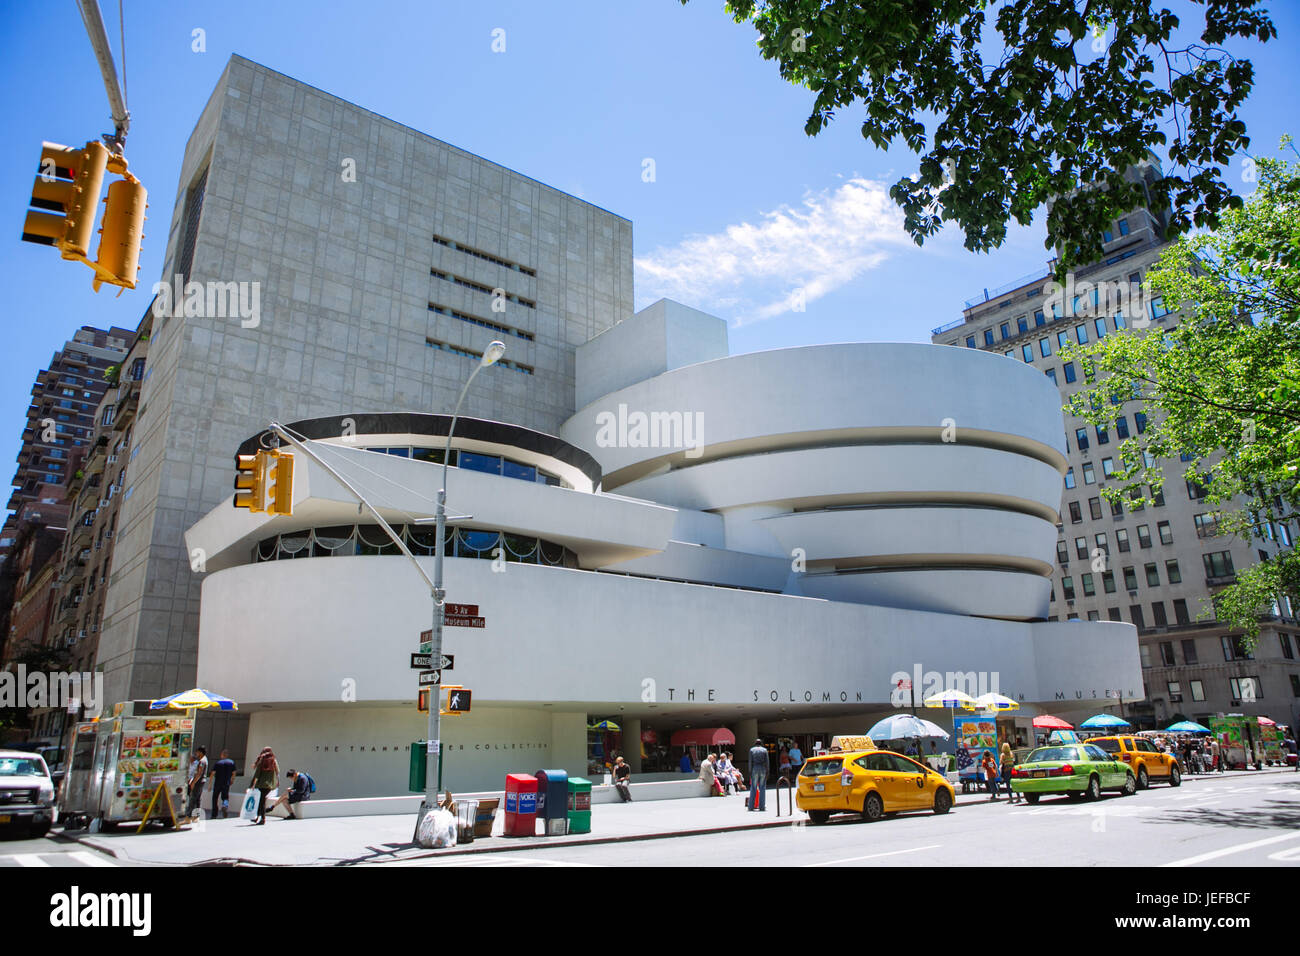 Facade of the Guggenheim Museum, New York City, USA - Stock Image